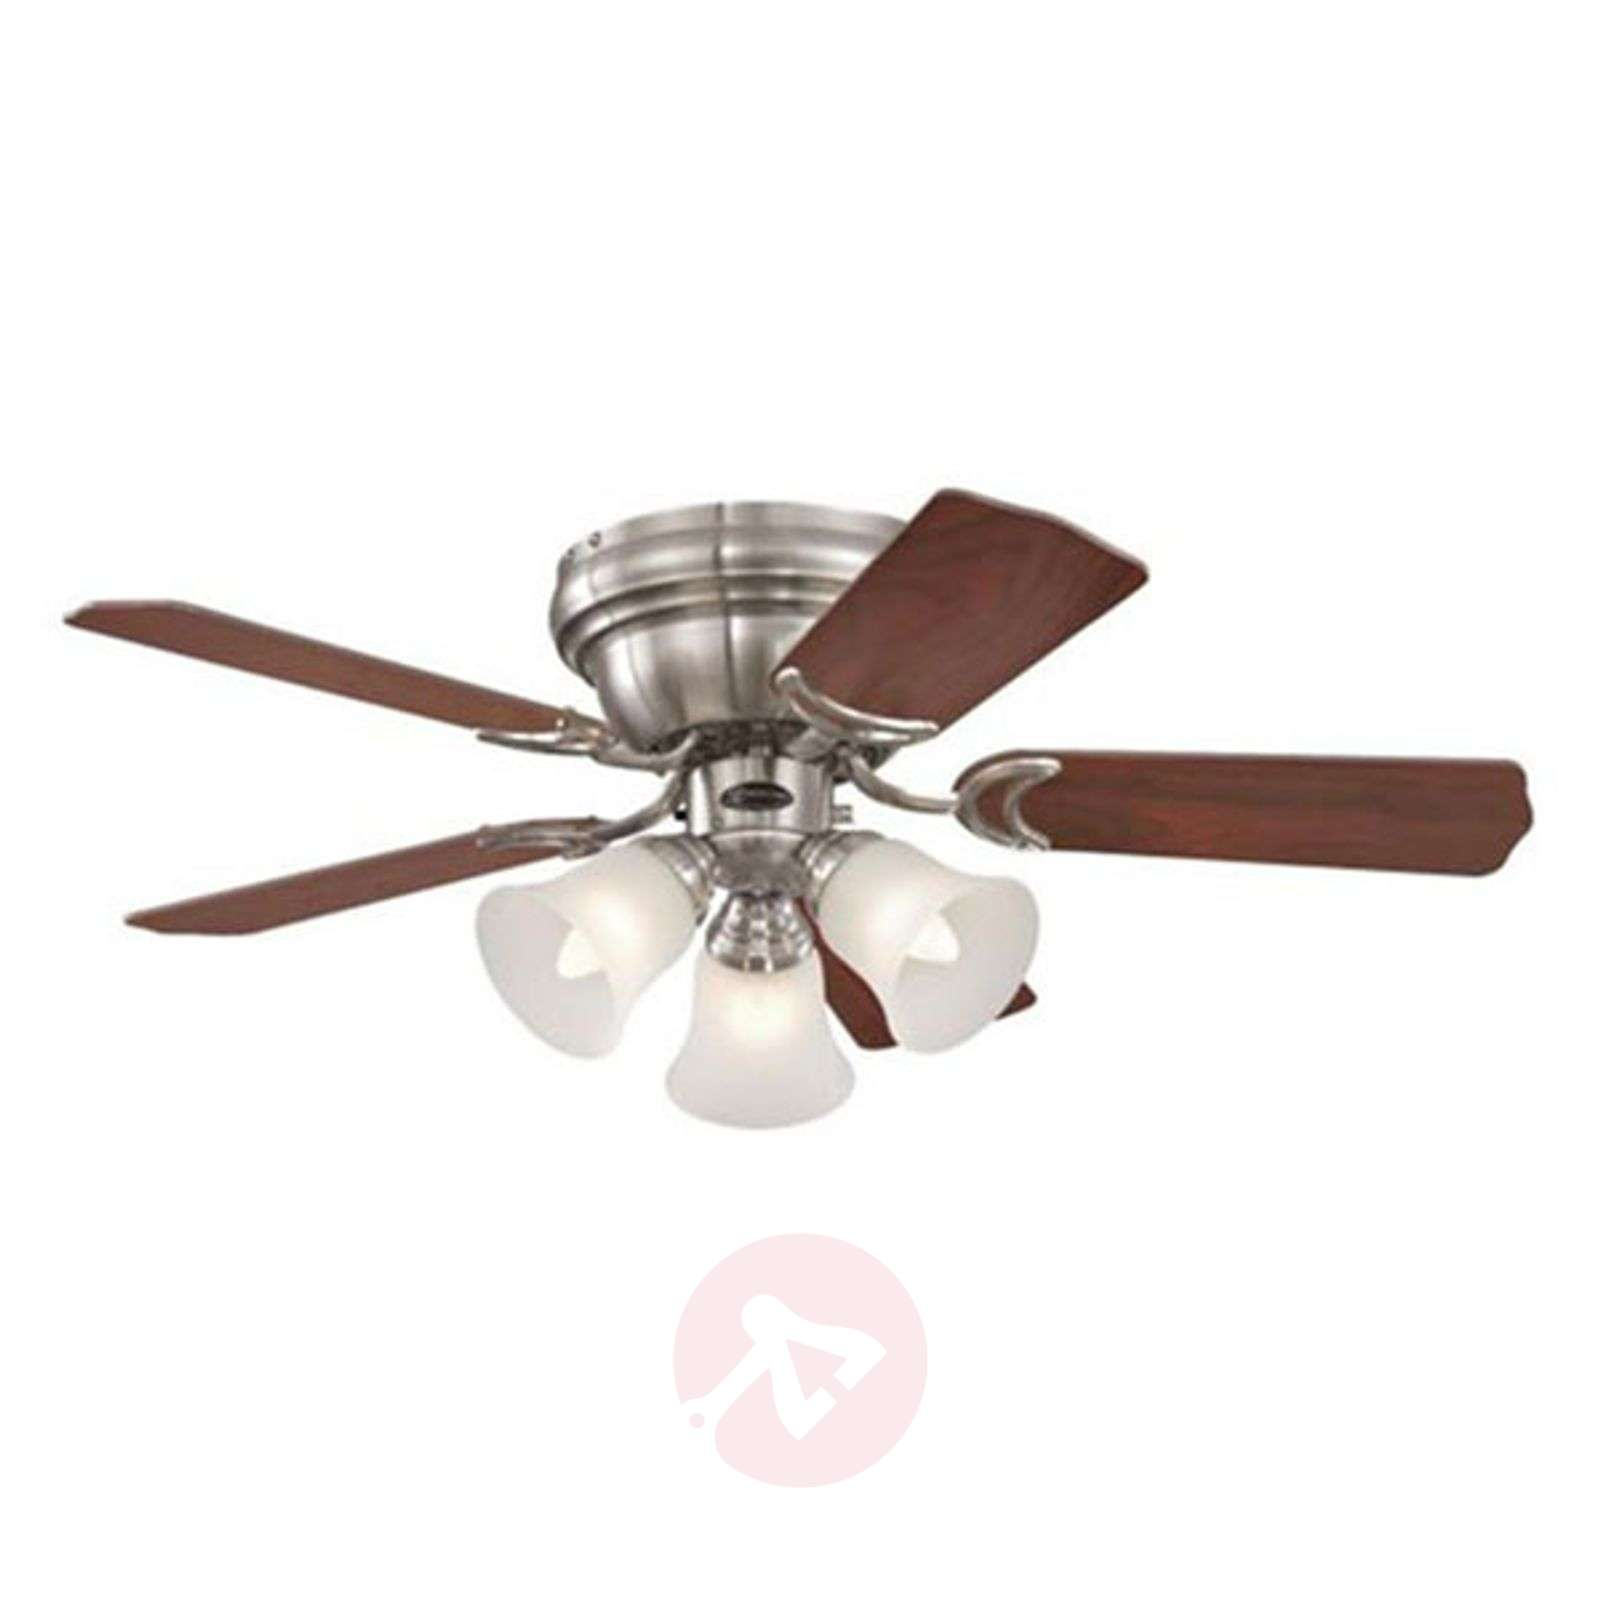 Ceiling fan Contempra Trio with light-9602285-01